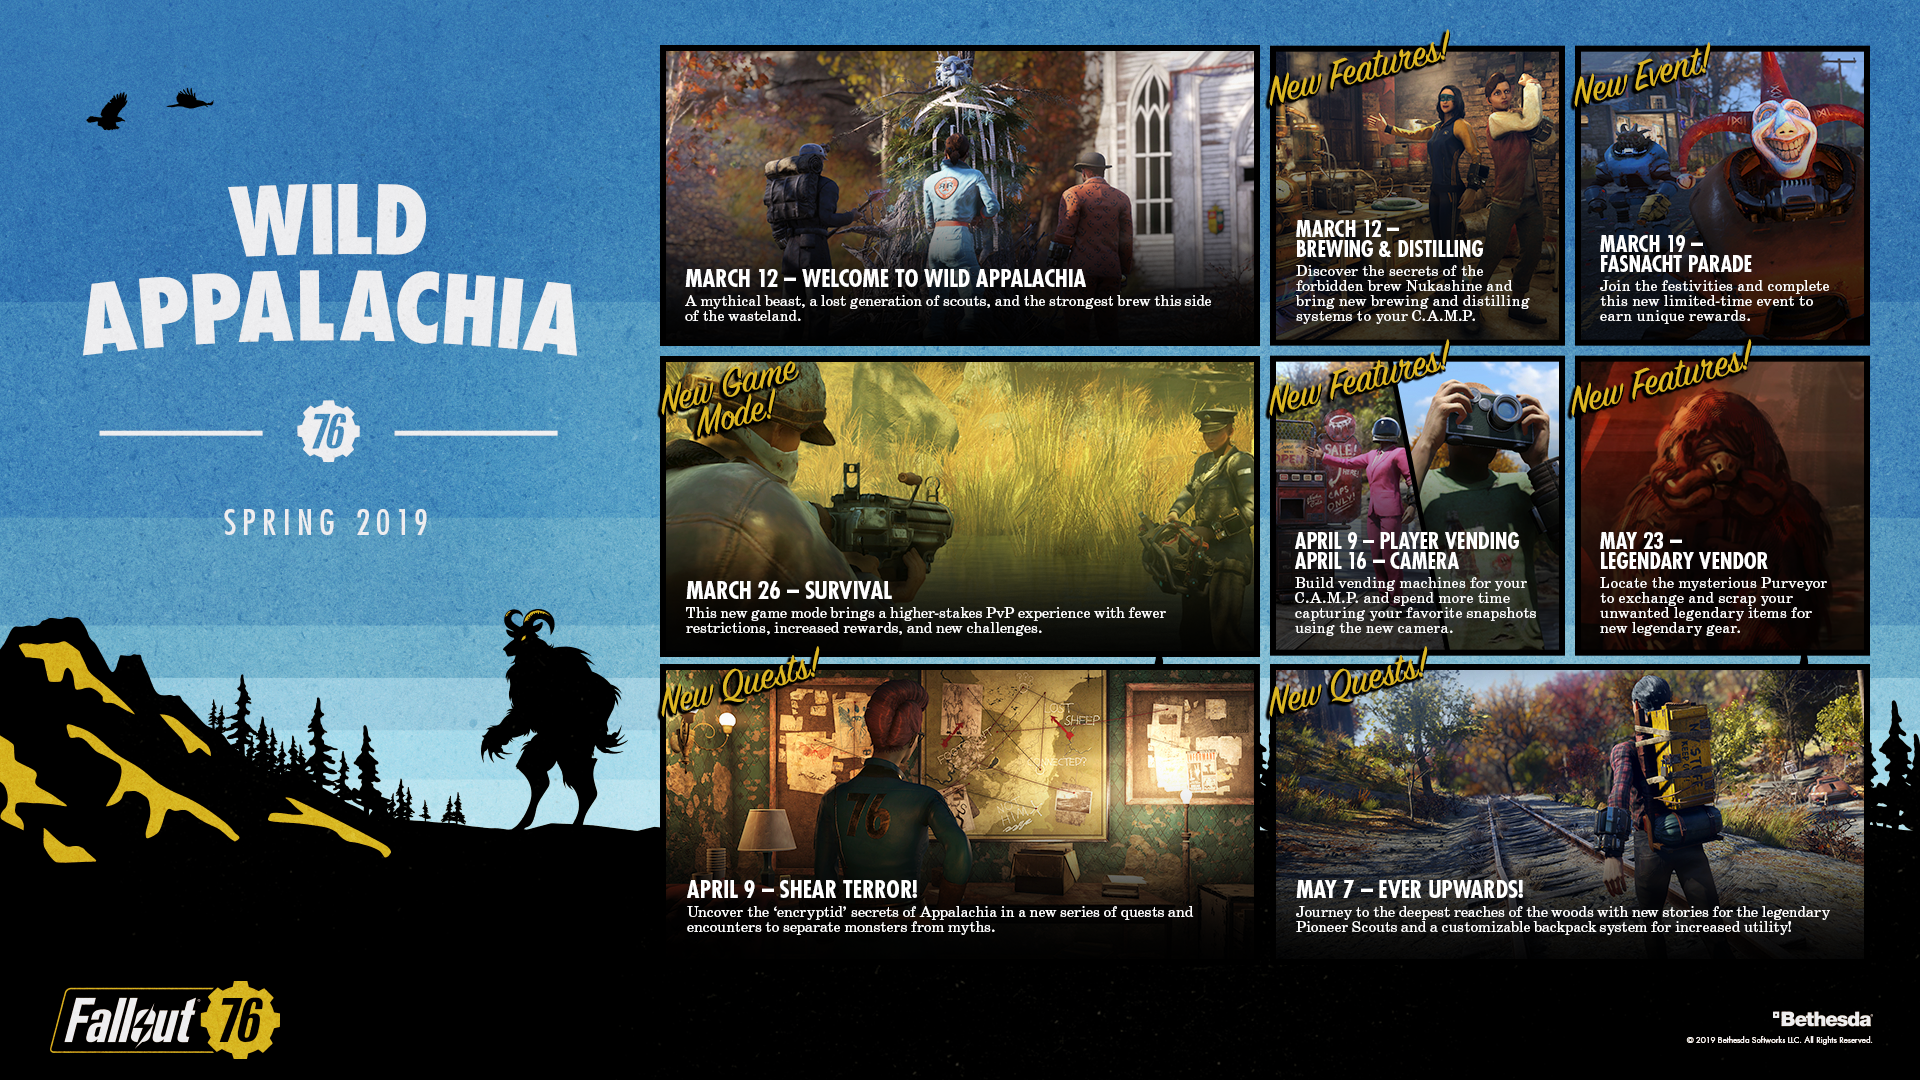 Fallout 76 2019 DLC Roadmap: Wild Appalachia Release Dates Confirmed